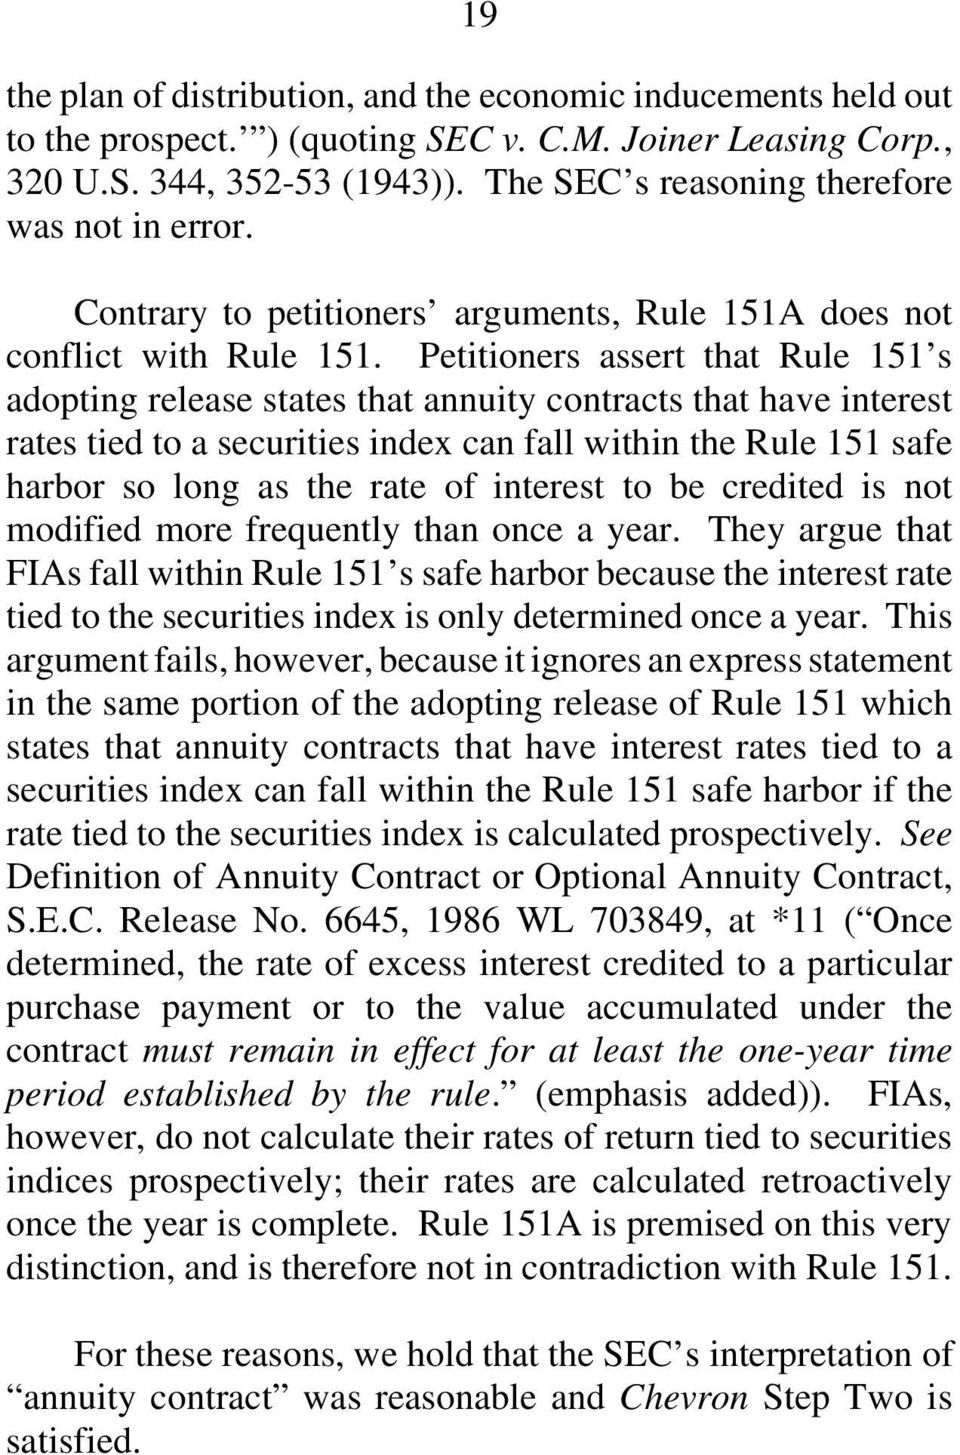 Petitioners assert that Rule 151 s adopting release states that annuity contracts that have interest rates tied to a securities index can fall within the Rule 151 safe harbor so long as the rate of